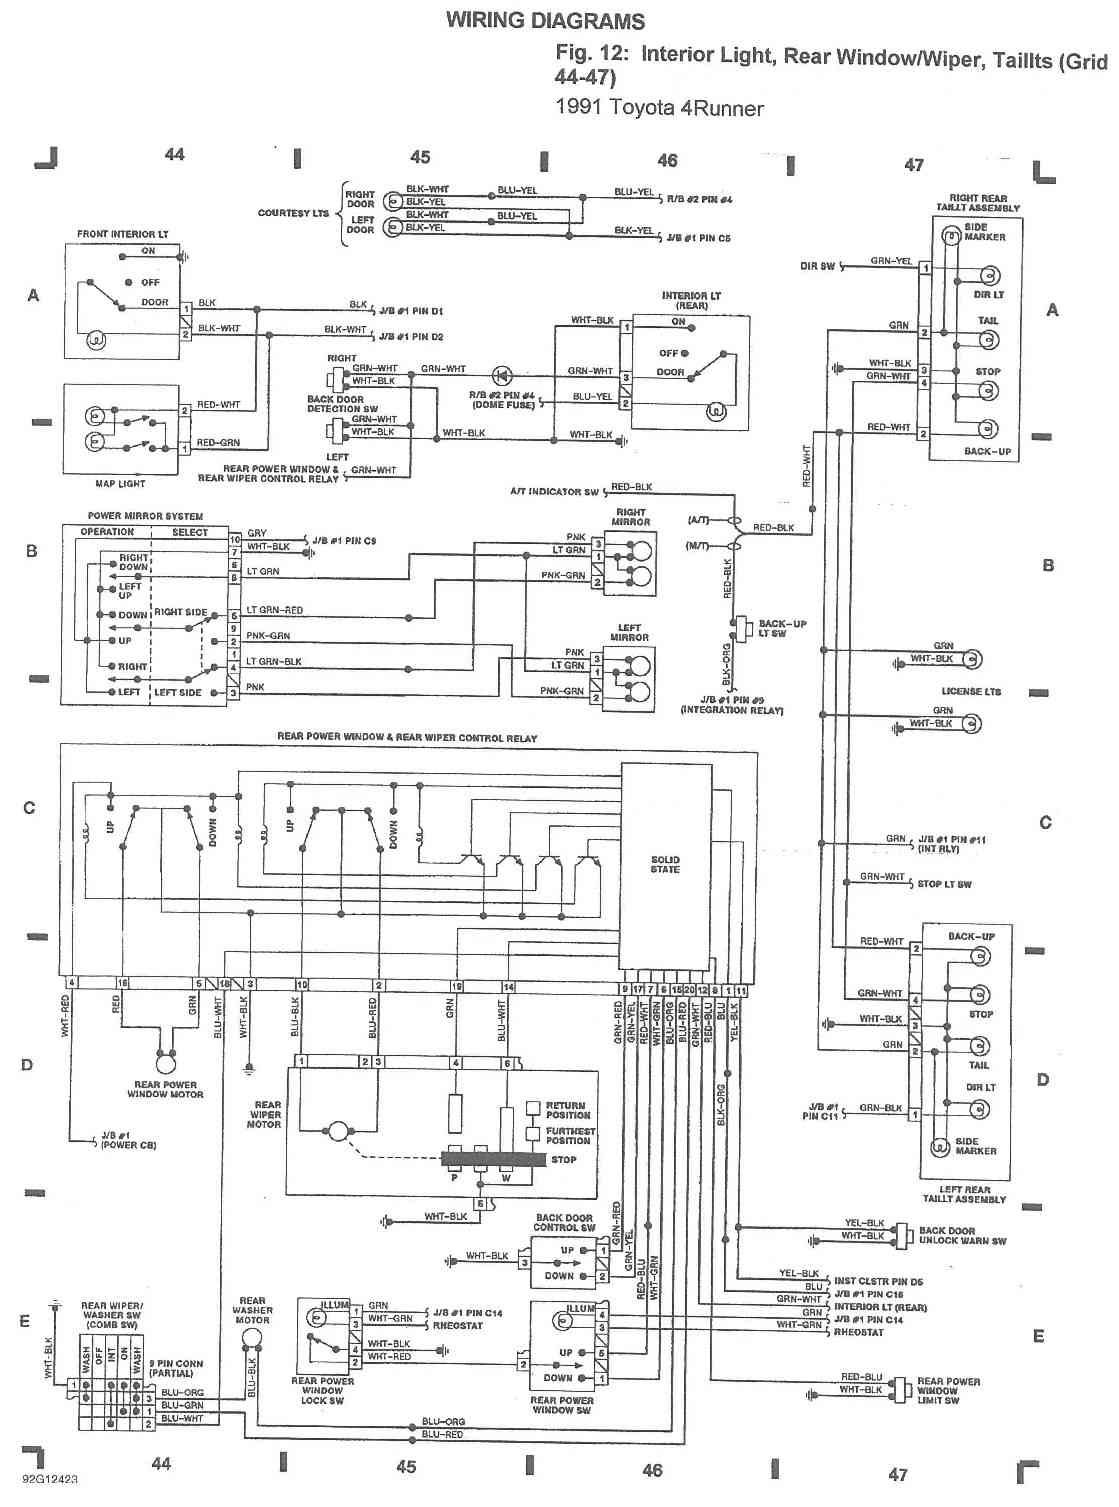 95 toyota pickup wiring diagram wiring diagram list 95 4runner stereo wiring diagram [ 1119 x 1507 Pixel ]